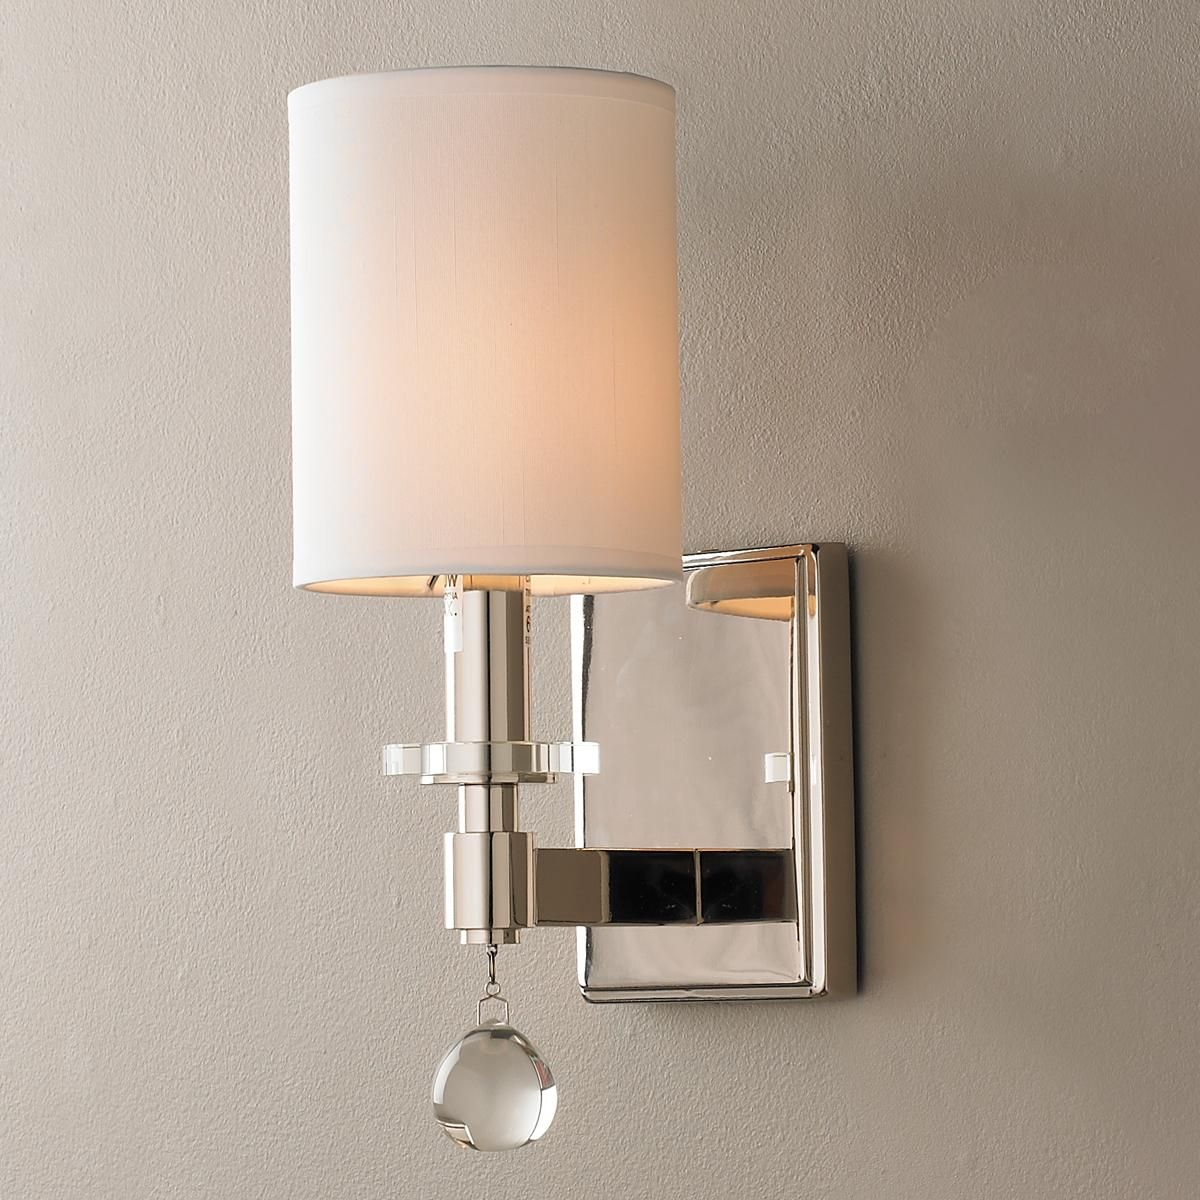 Modern Crystal Glass Drop Sconce Bathroom Sconce